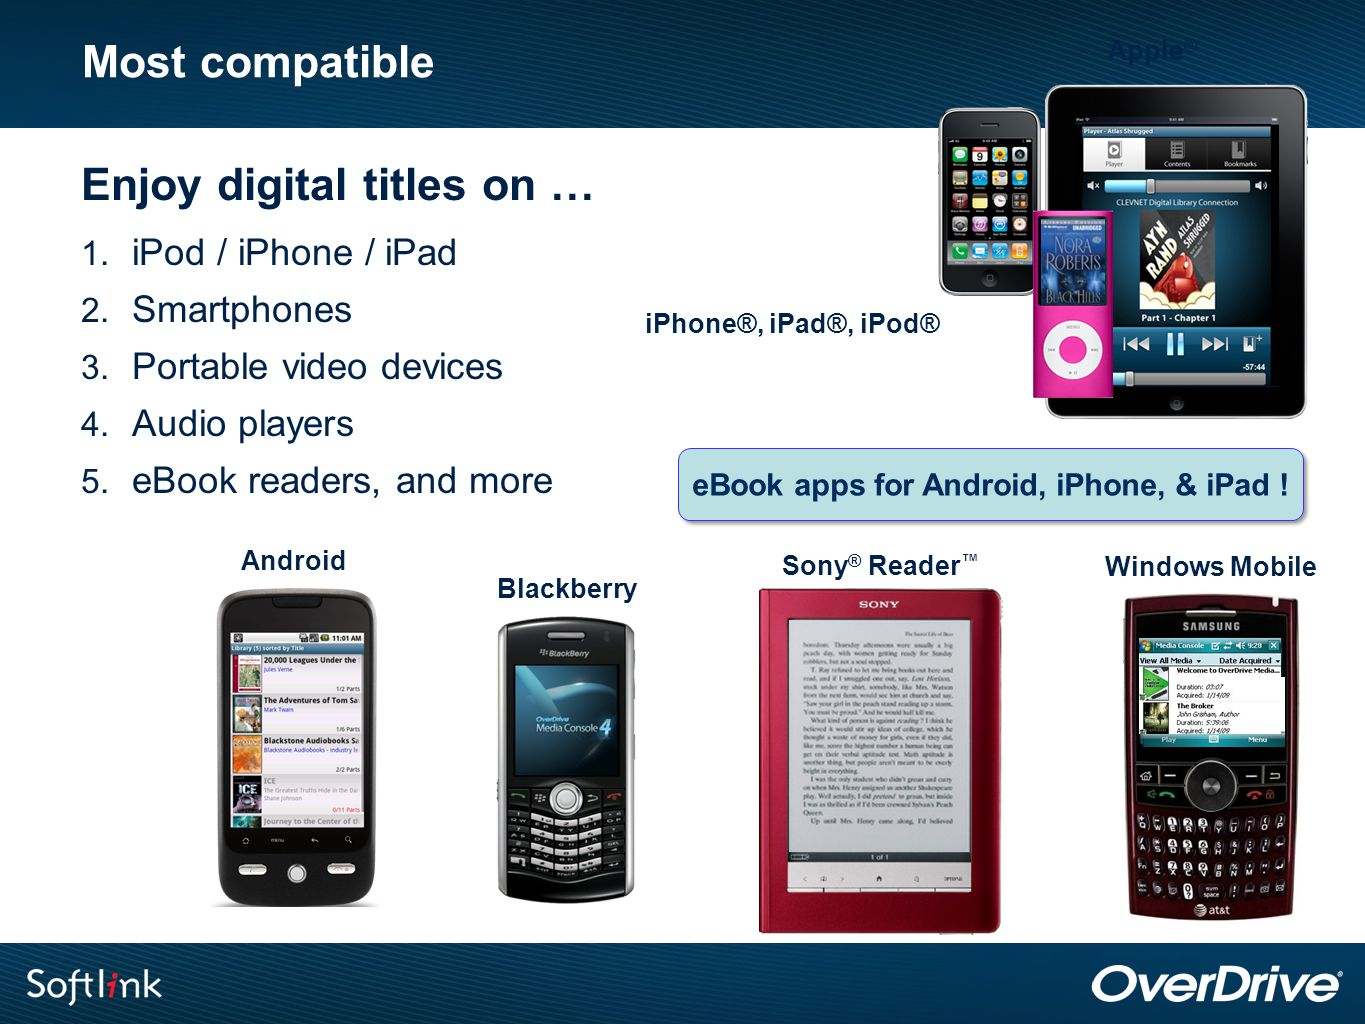 Most compatible Enjoy digital titles on … 1. iPod / iPhone / iPad 2. Smartphones 3. Portable video devices 4. Audio players 5. eBook readers, and more